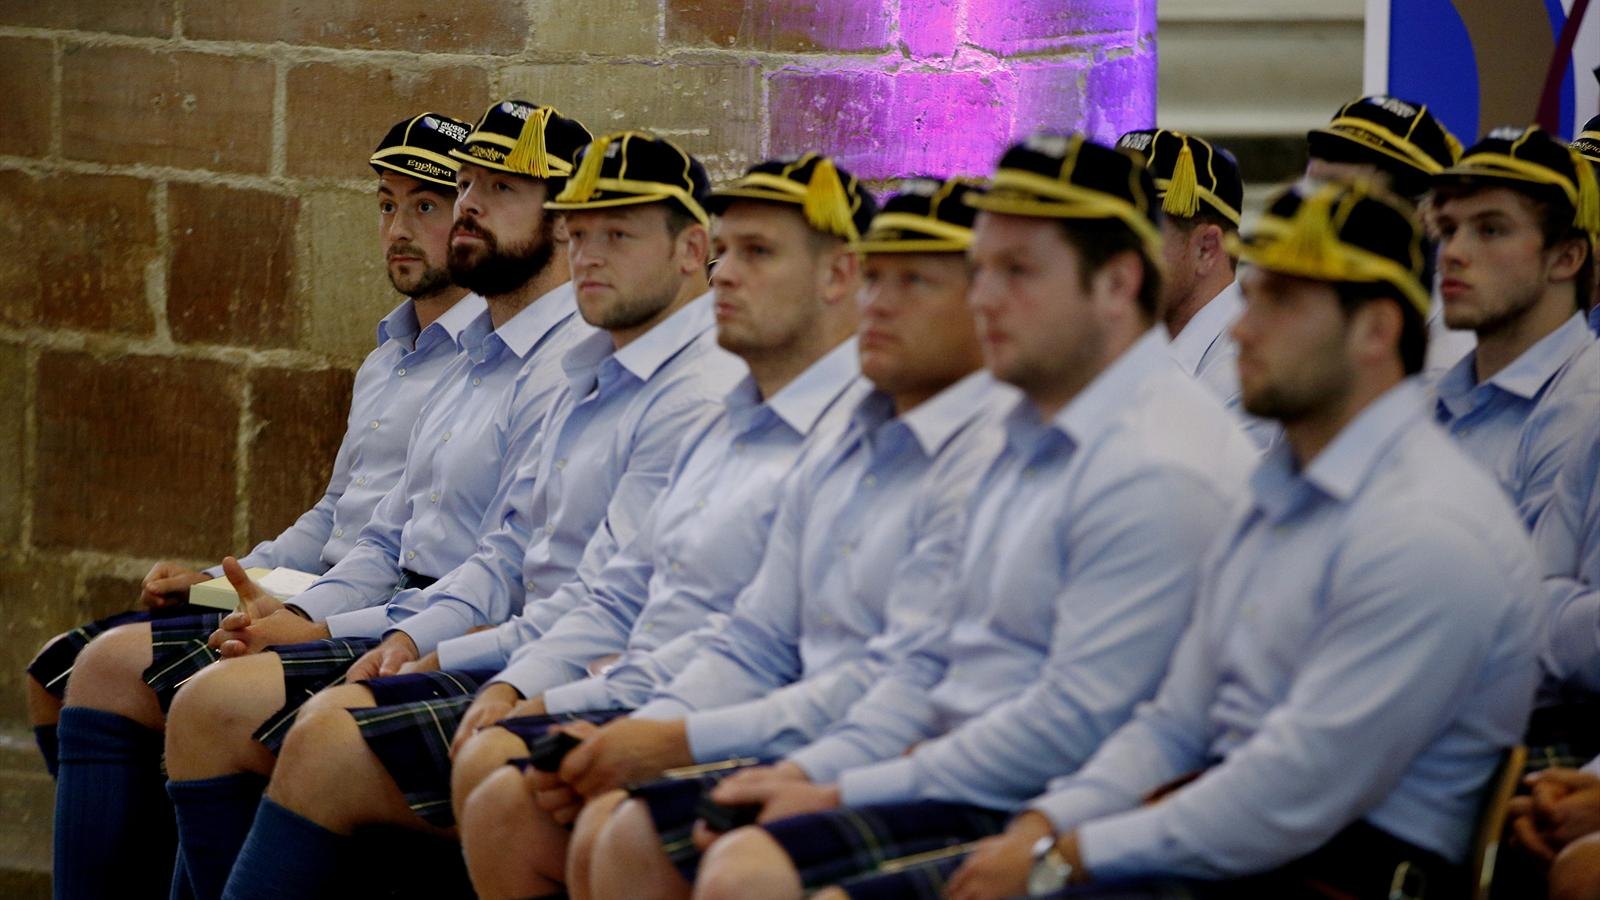 Scotland's rugby team being welcomed to Gloucester.